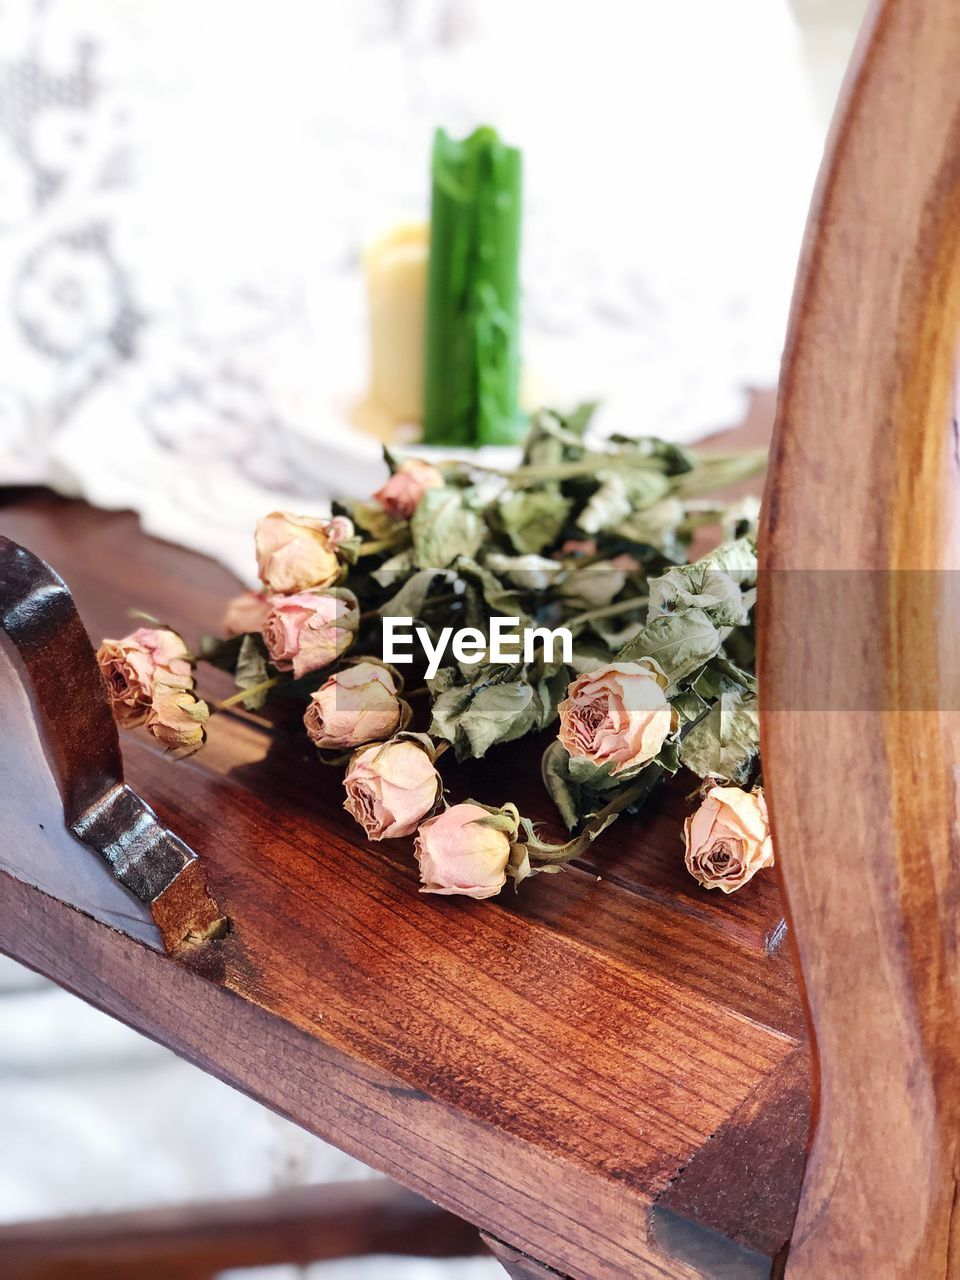 freshness, food and drink, vegetable, indoors, food, wellbeing, table, healthy eating, close-up, still life, wood - material, no people, high angle view, choice, cutting board, plant, variation, focus on foreground, flower, flowering plant